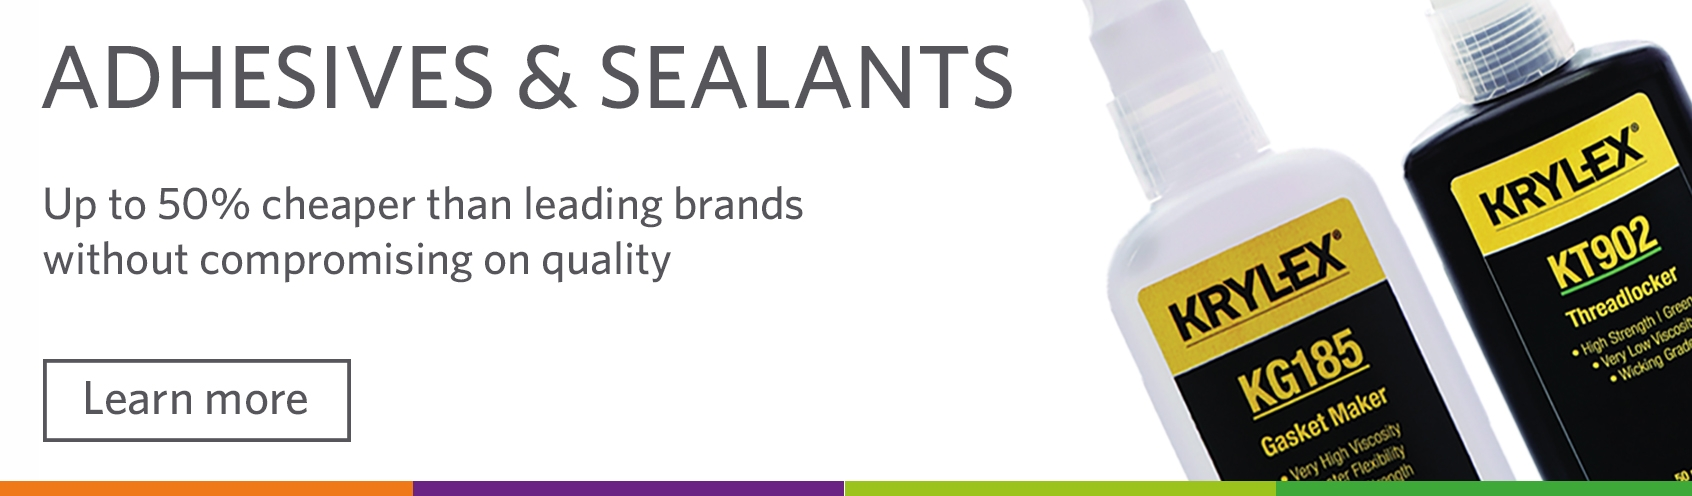 KRYLEX Industrial Adhesives & Sealants